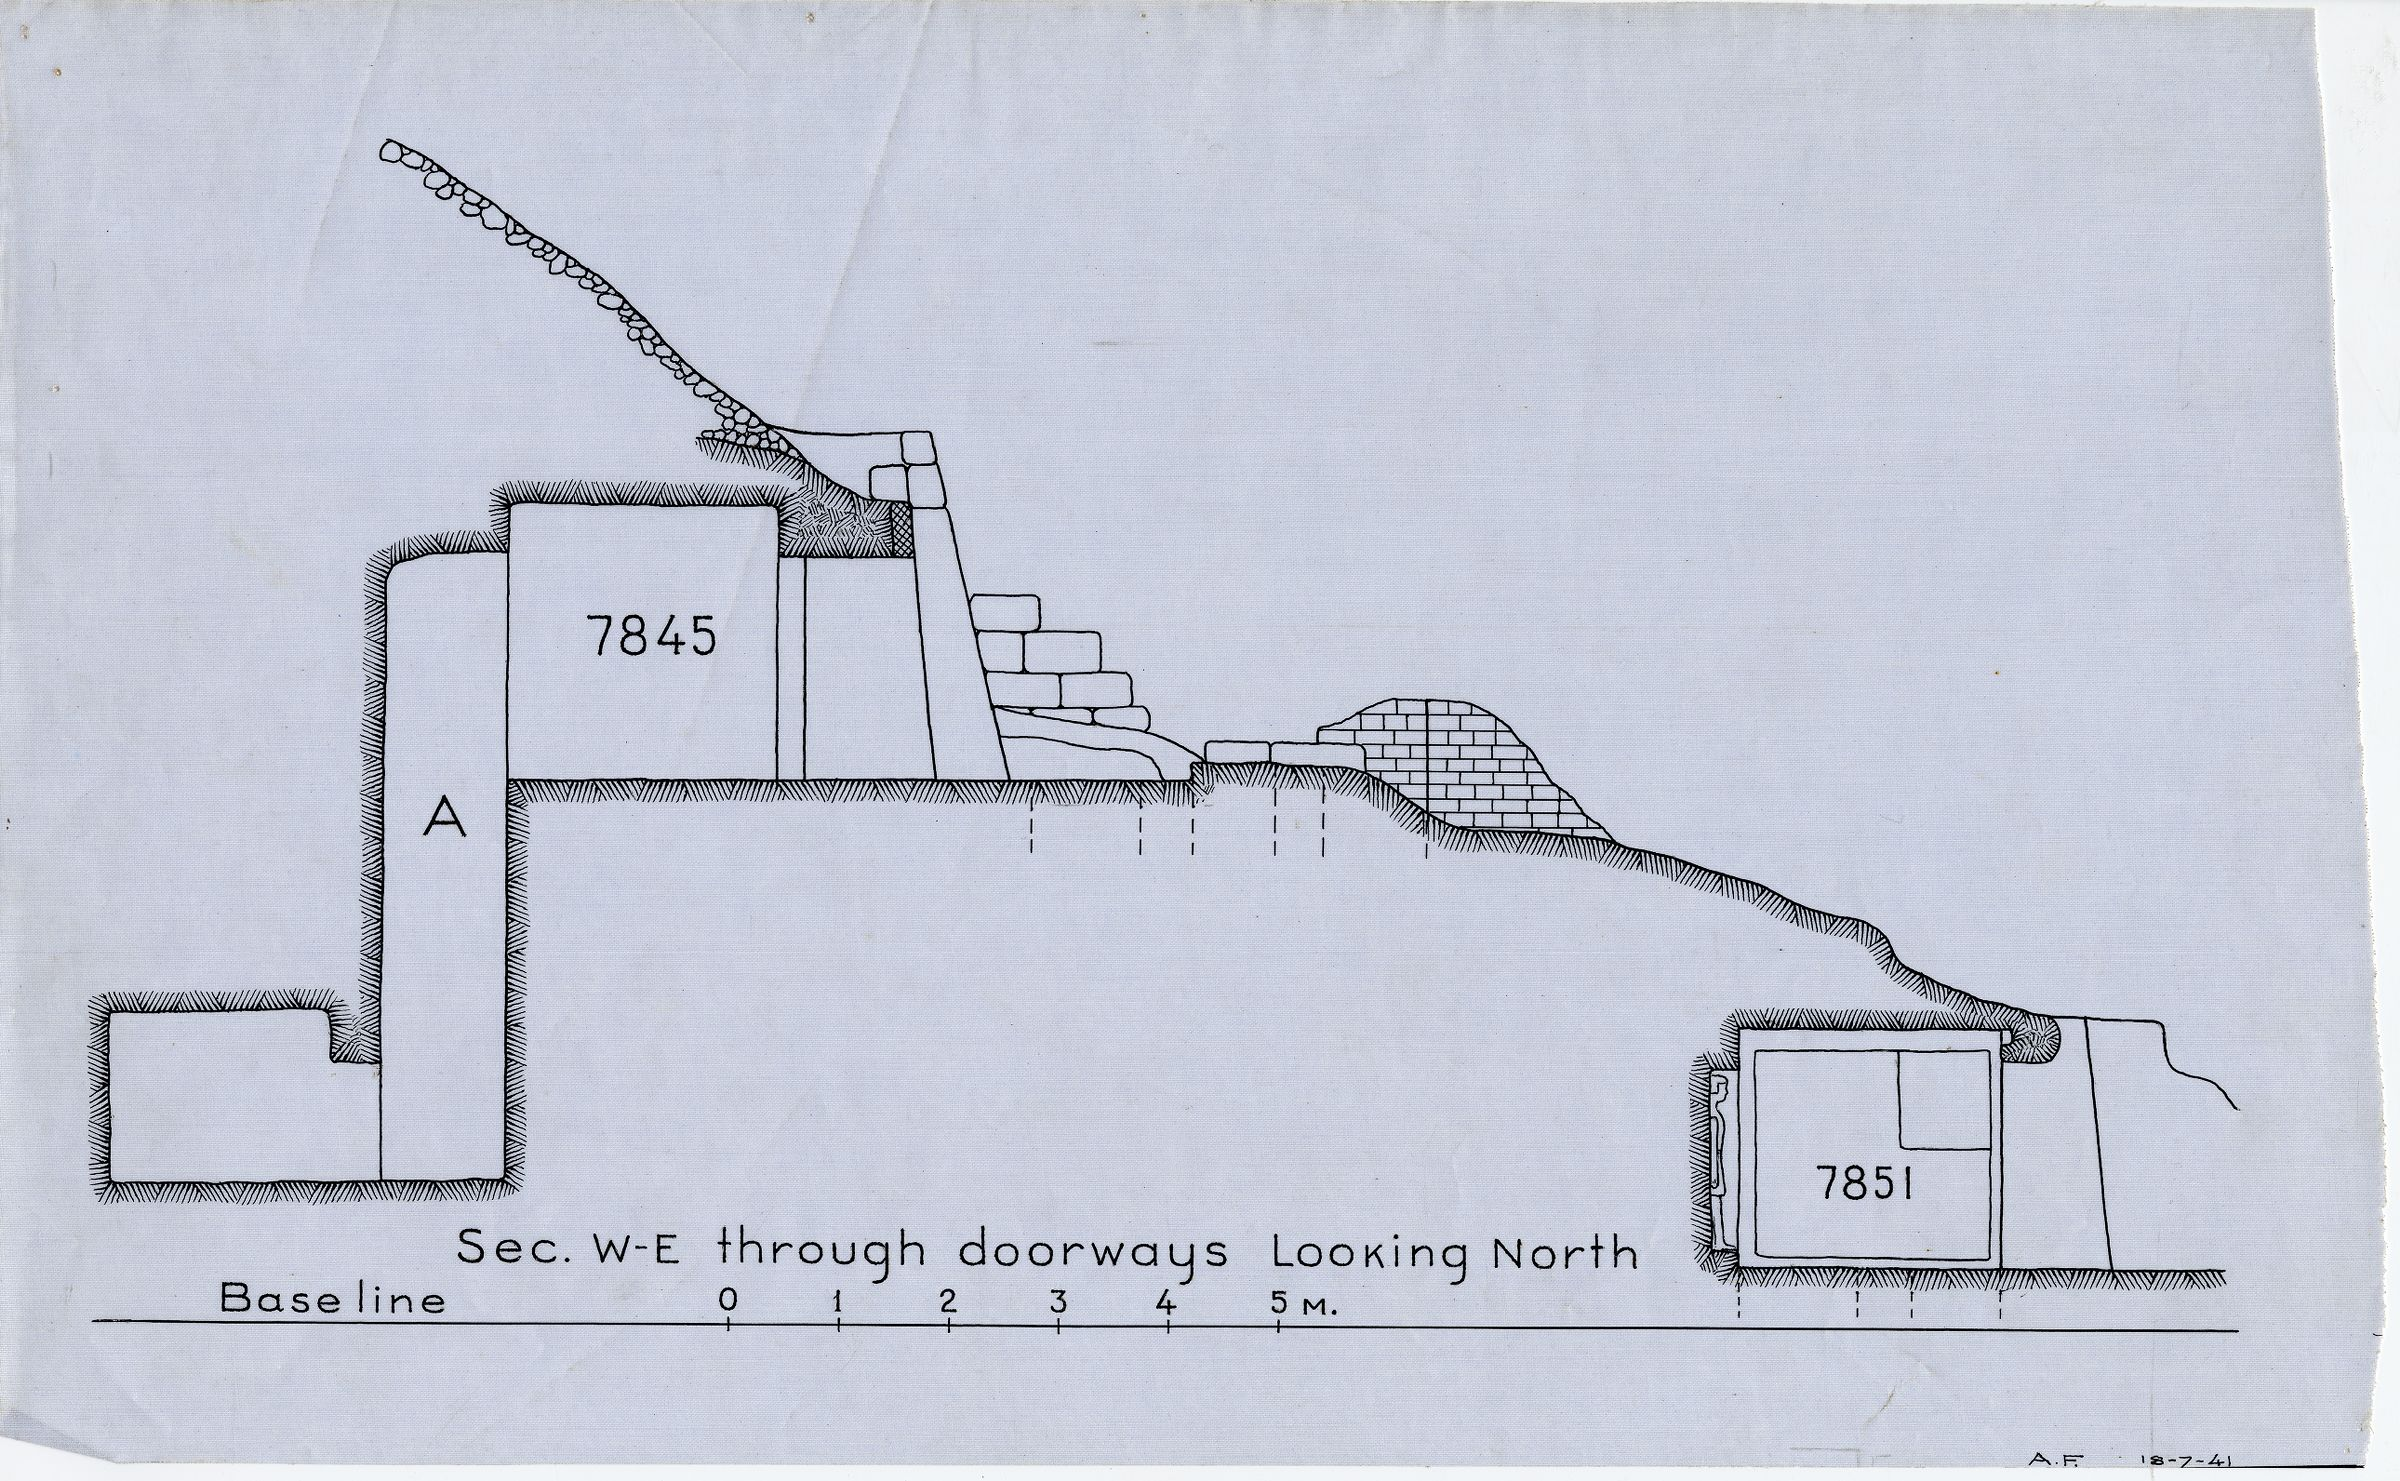 Maps and plans: Section of G 7845 and G 7851